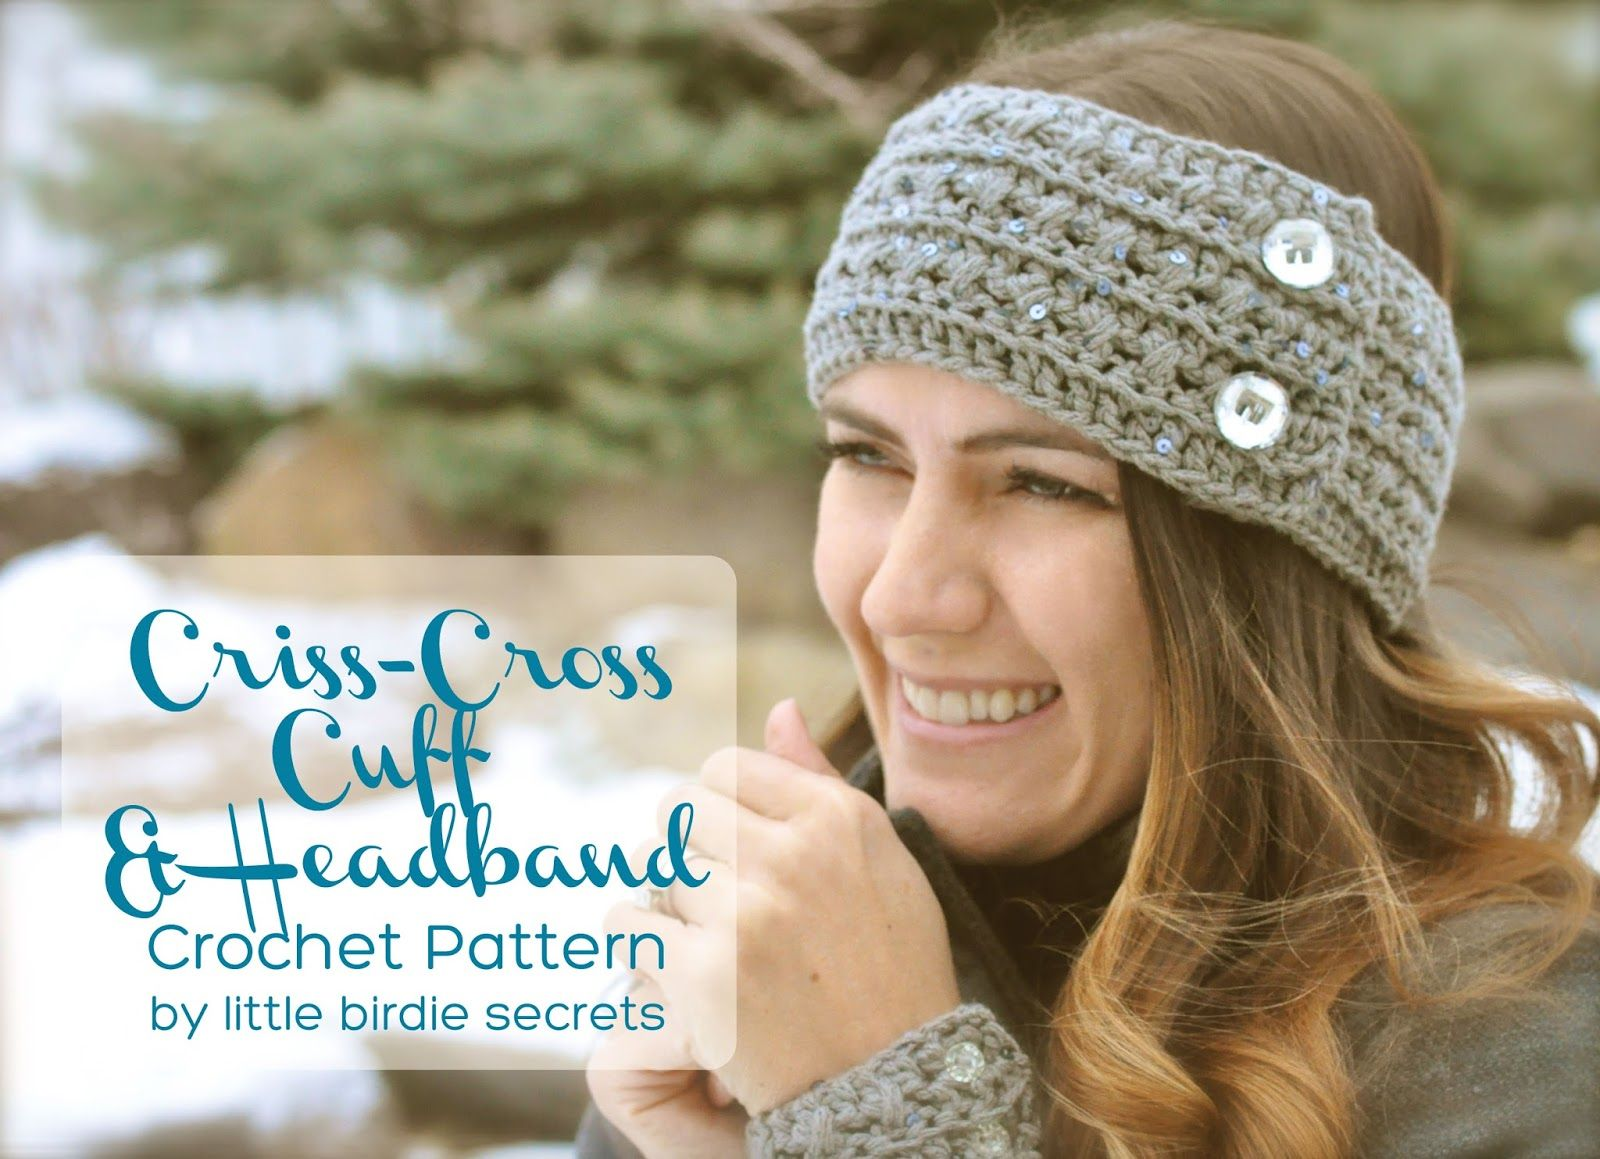 Pattern instructions for Cuff: Ch 27. 1. Hdc in 2nd ch from hk and ...